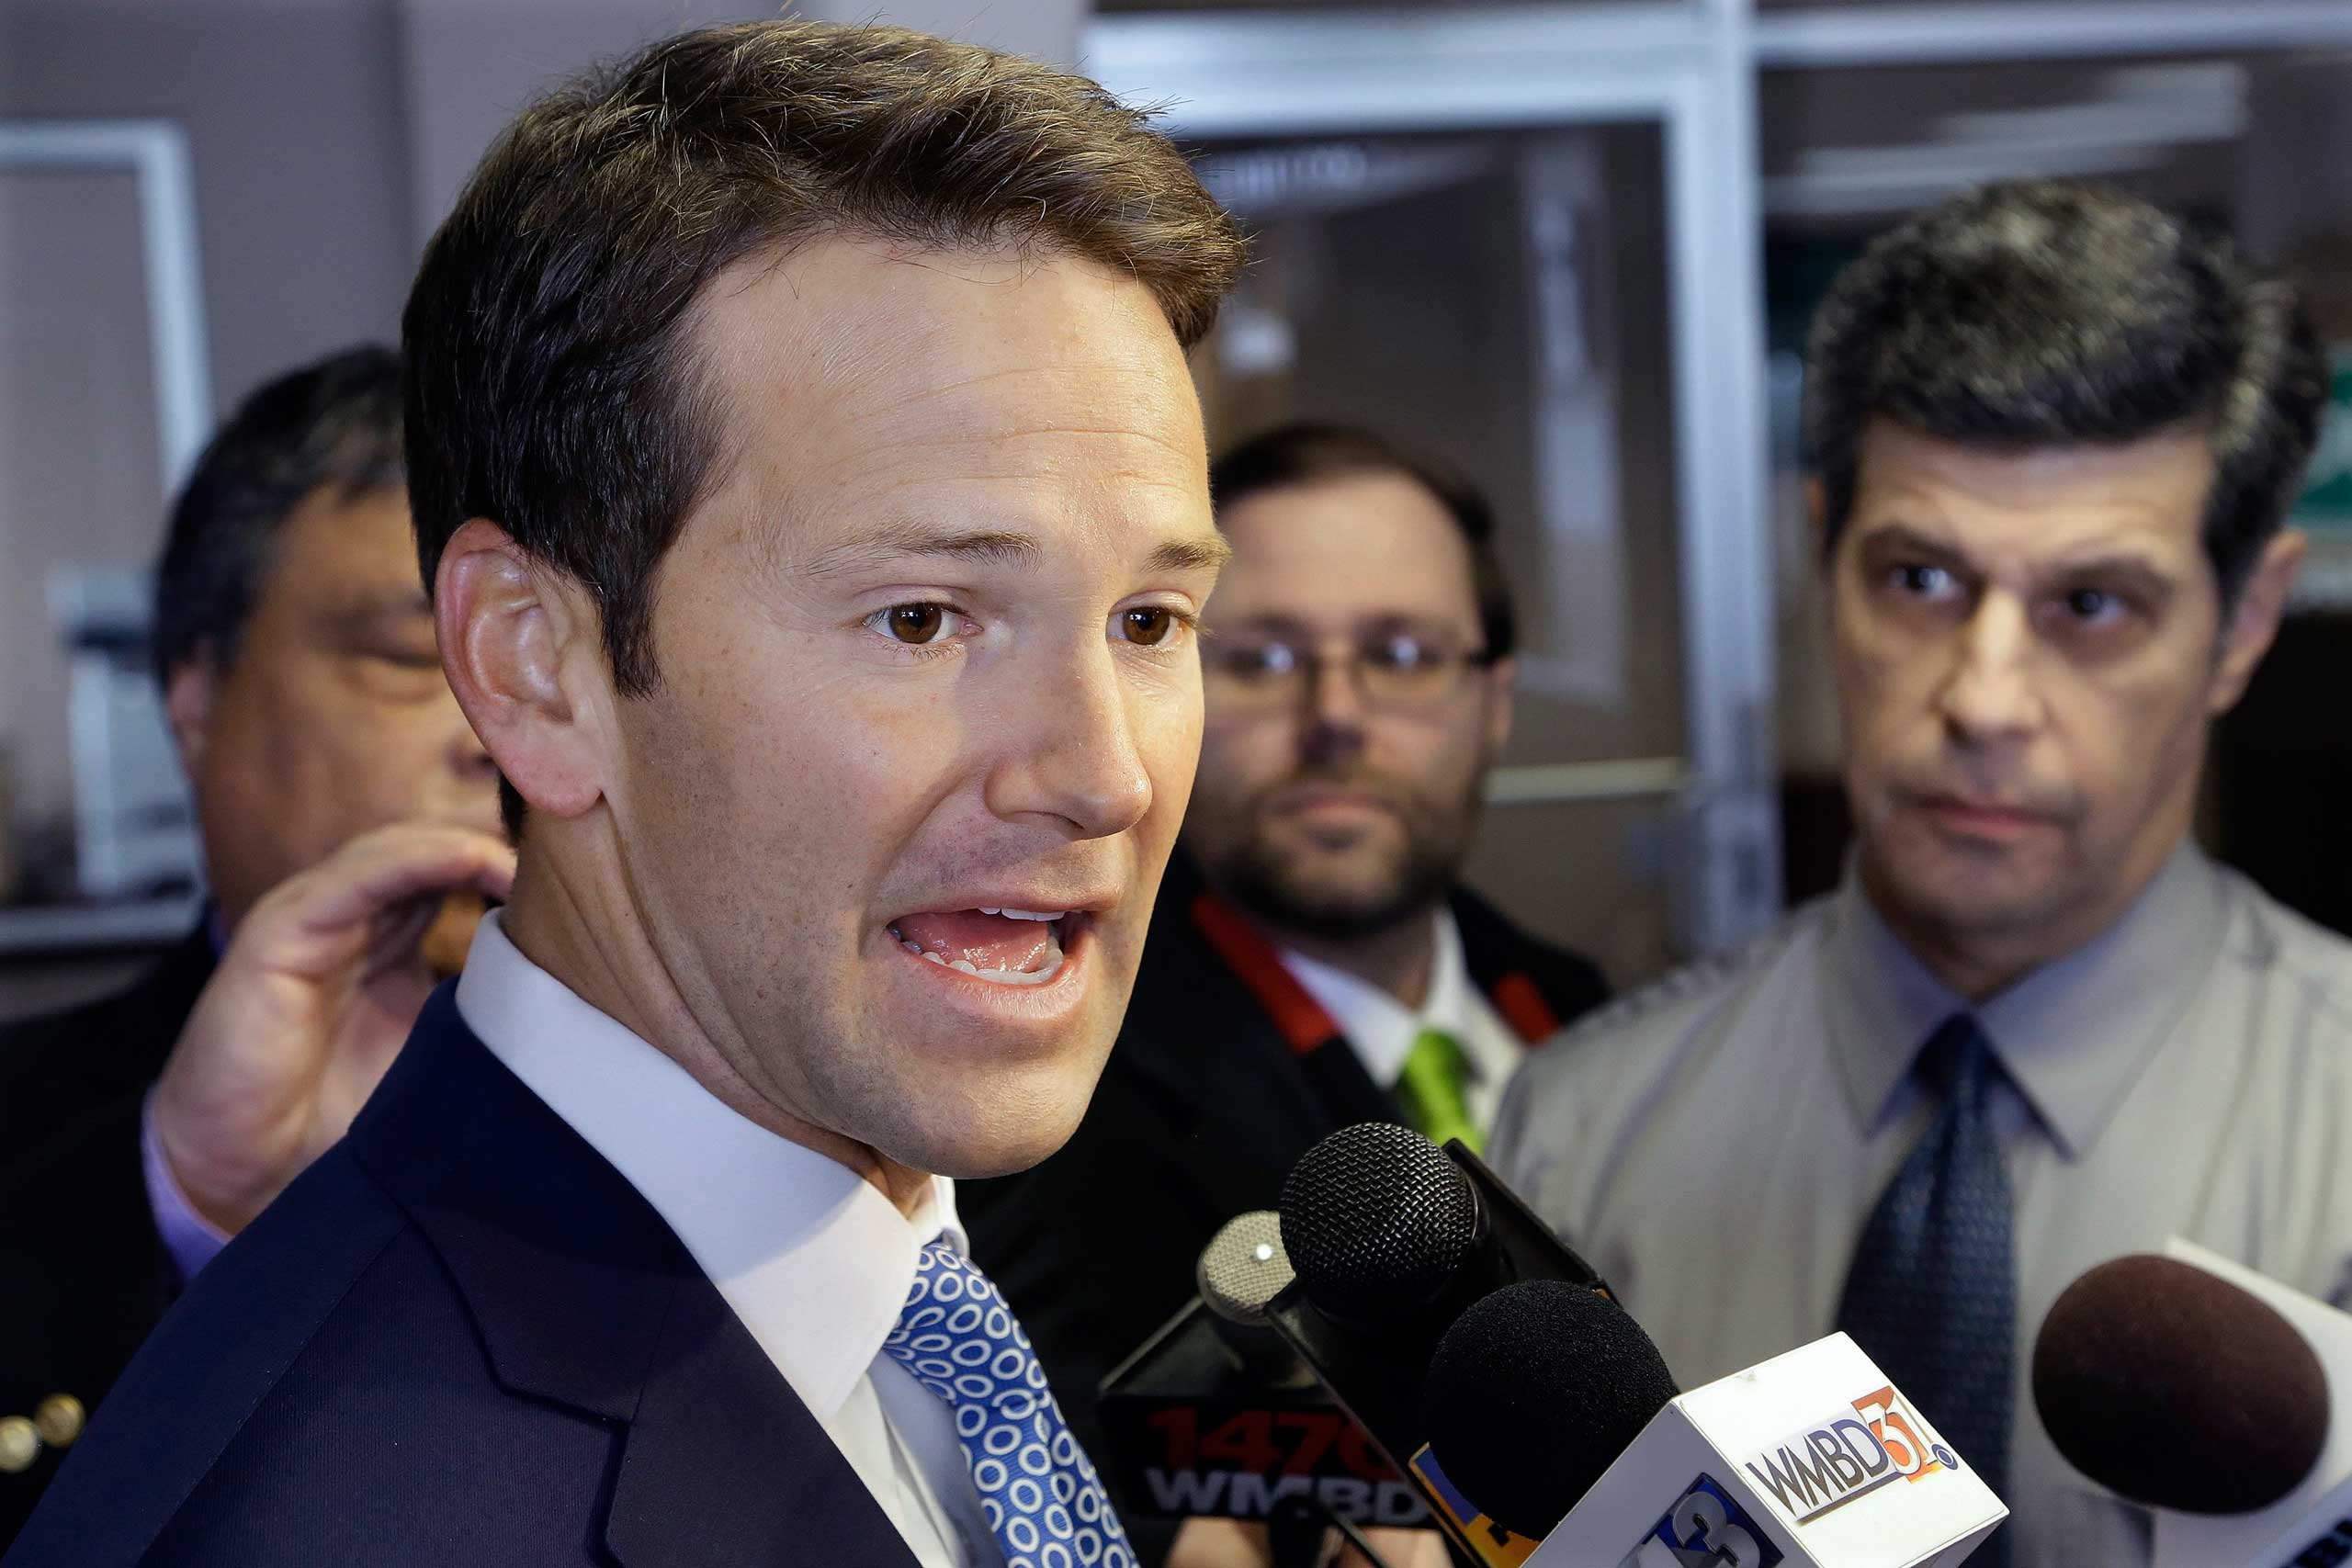 Rep. Aaron Schock, R-Ill. speaks to reporters in Peoria Ill. on Feb. 2, 2015.